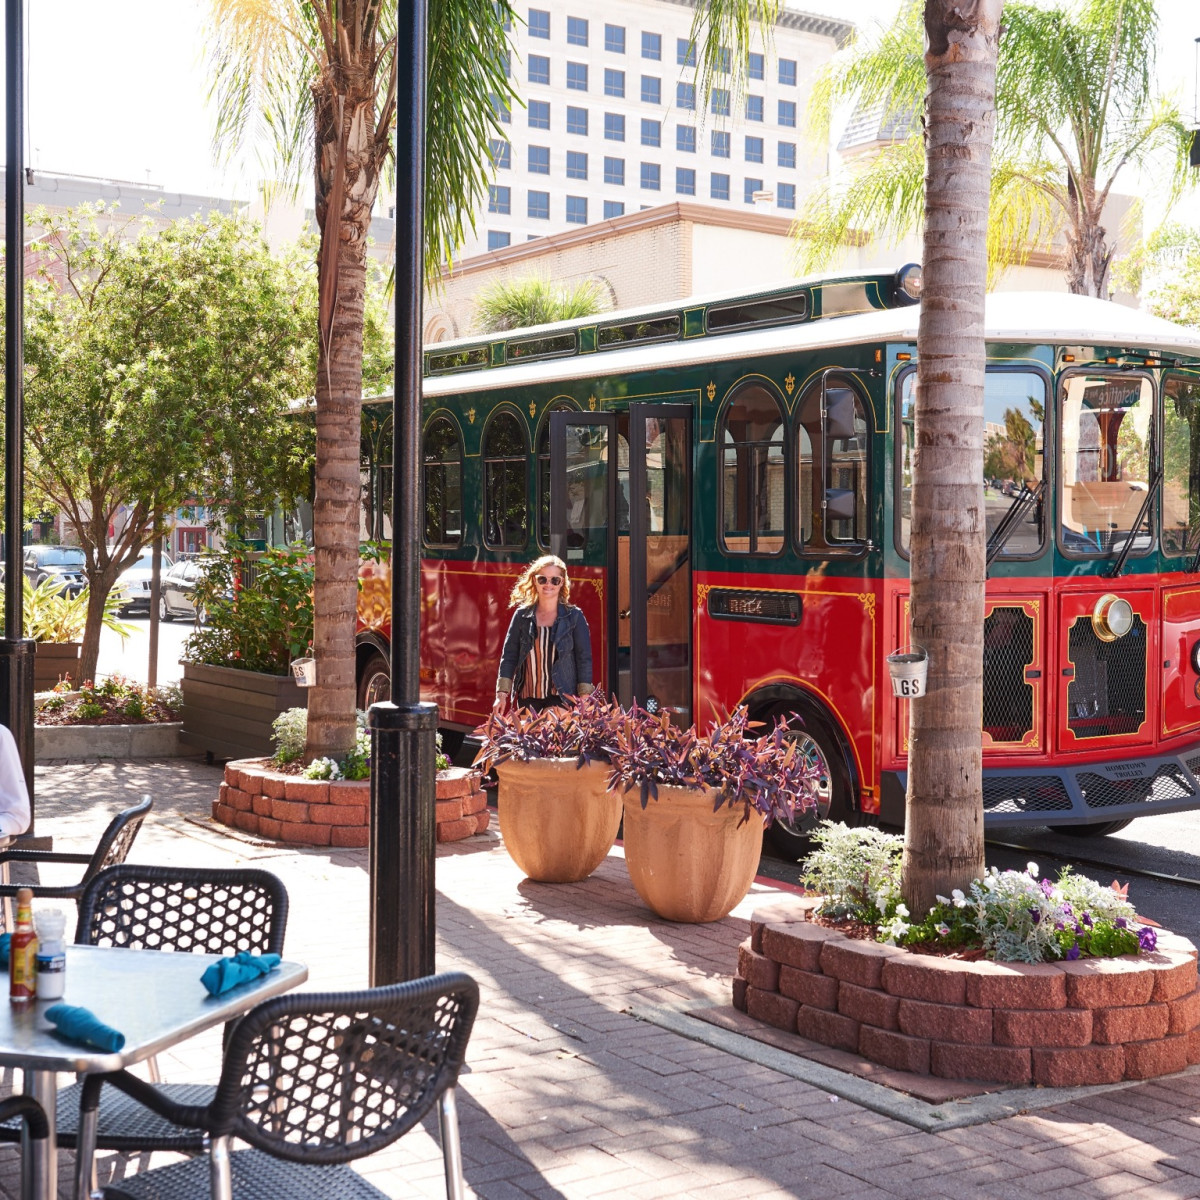 Trolley on Post Office Street in Galveston